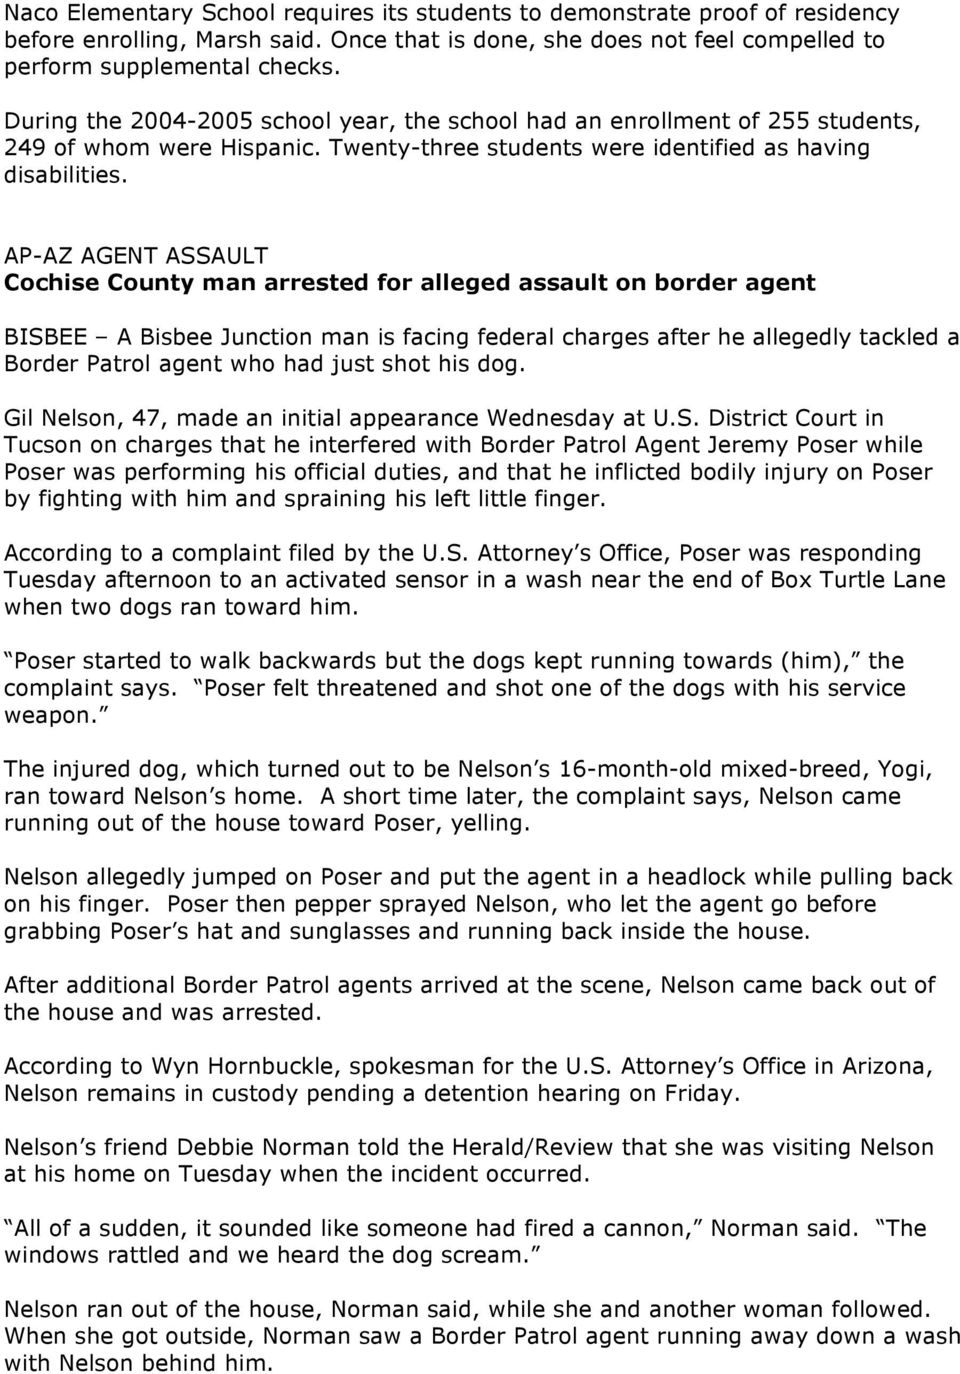 AP-AZ AGENT ASSAULT Cochise County man arrested for alleged assault on border agent BISBEE A Bisbee Junction man is facing federal charges after he allegedly tackled a Border Patrol agent who had